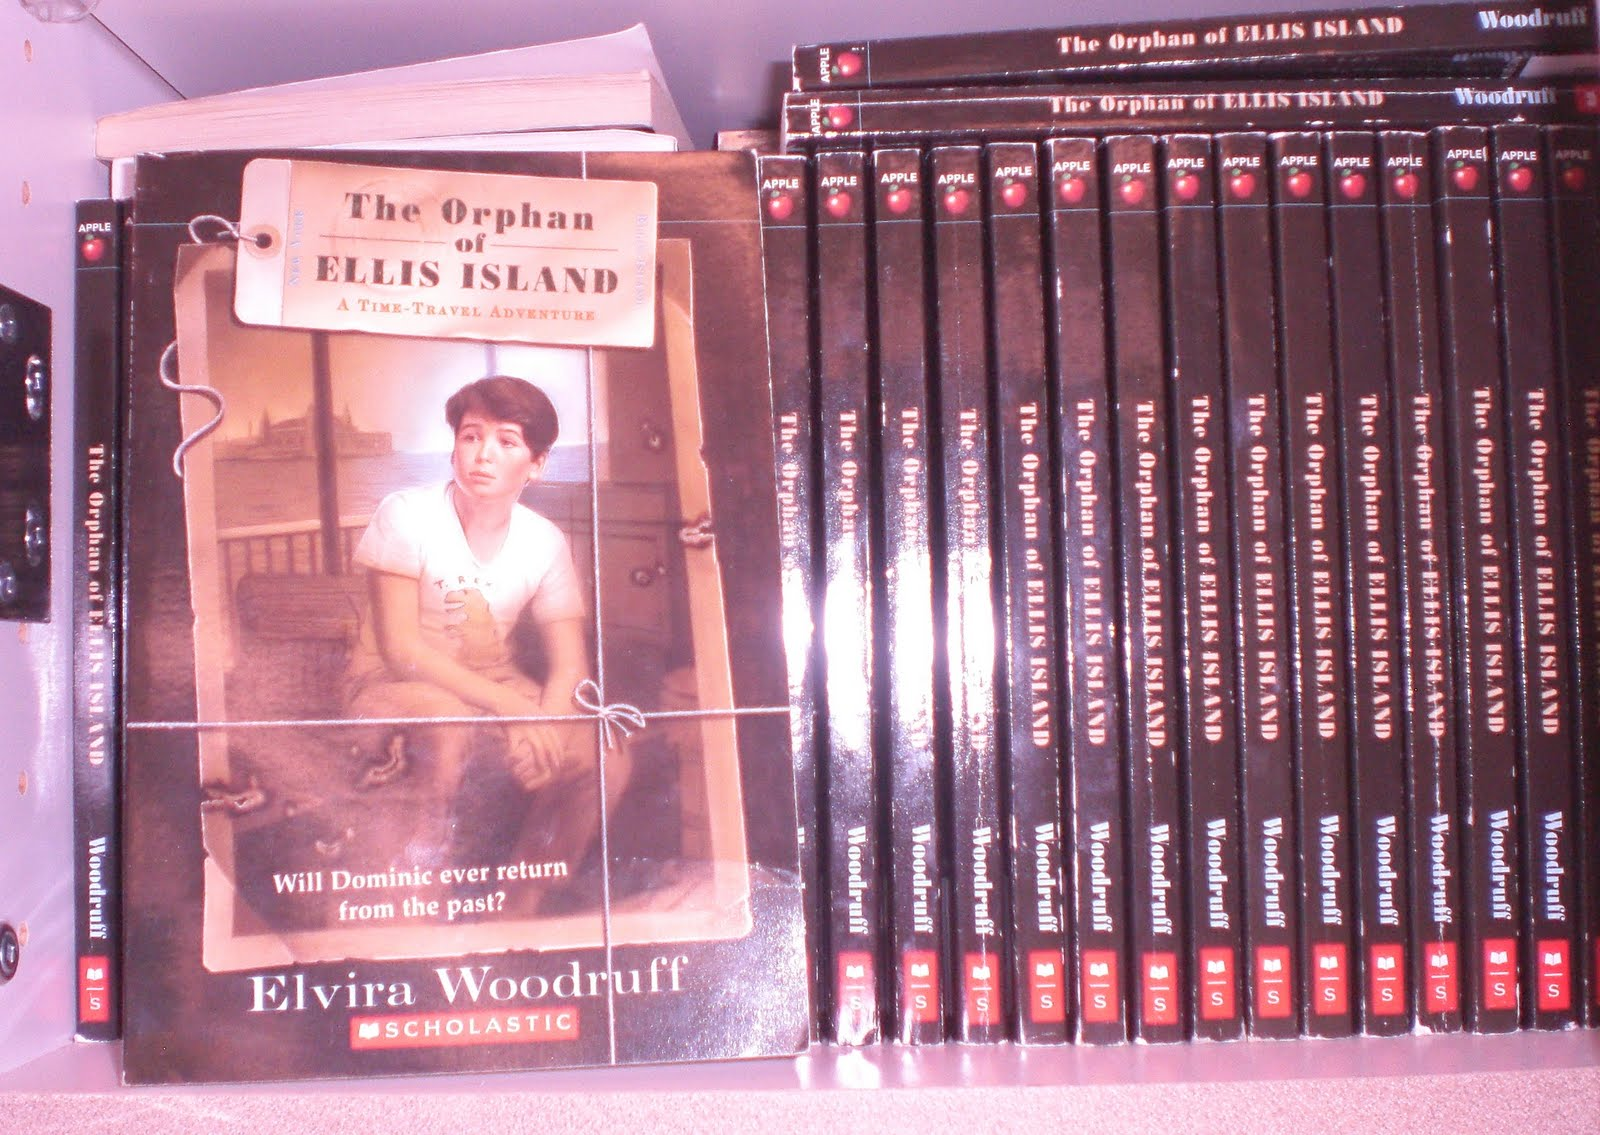 the orphan of ellis island book report This unit is intended to help take your students through the novel, the orphan of ellis island by elvira woodruff i have broken the novel up into 5 sections, each that can be made into a small packet.